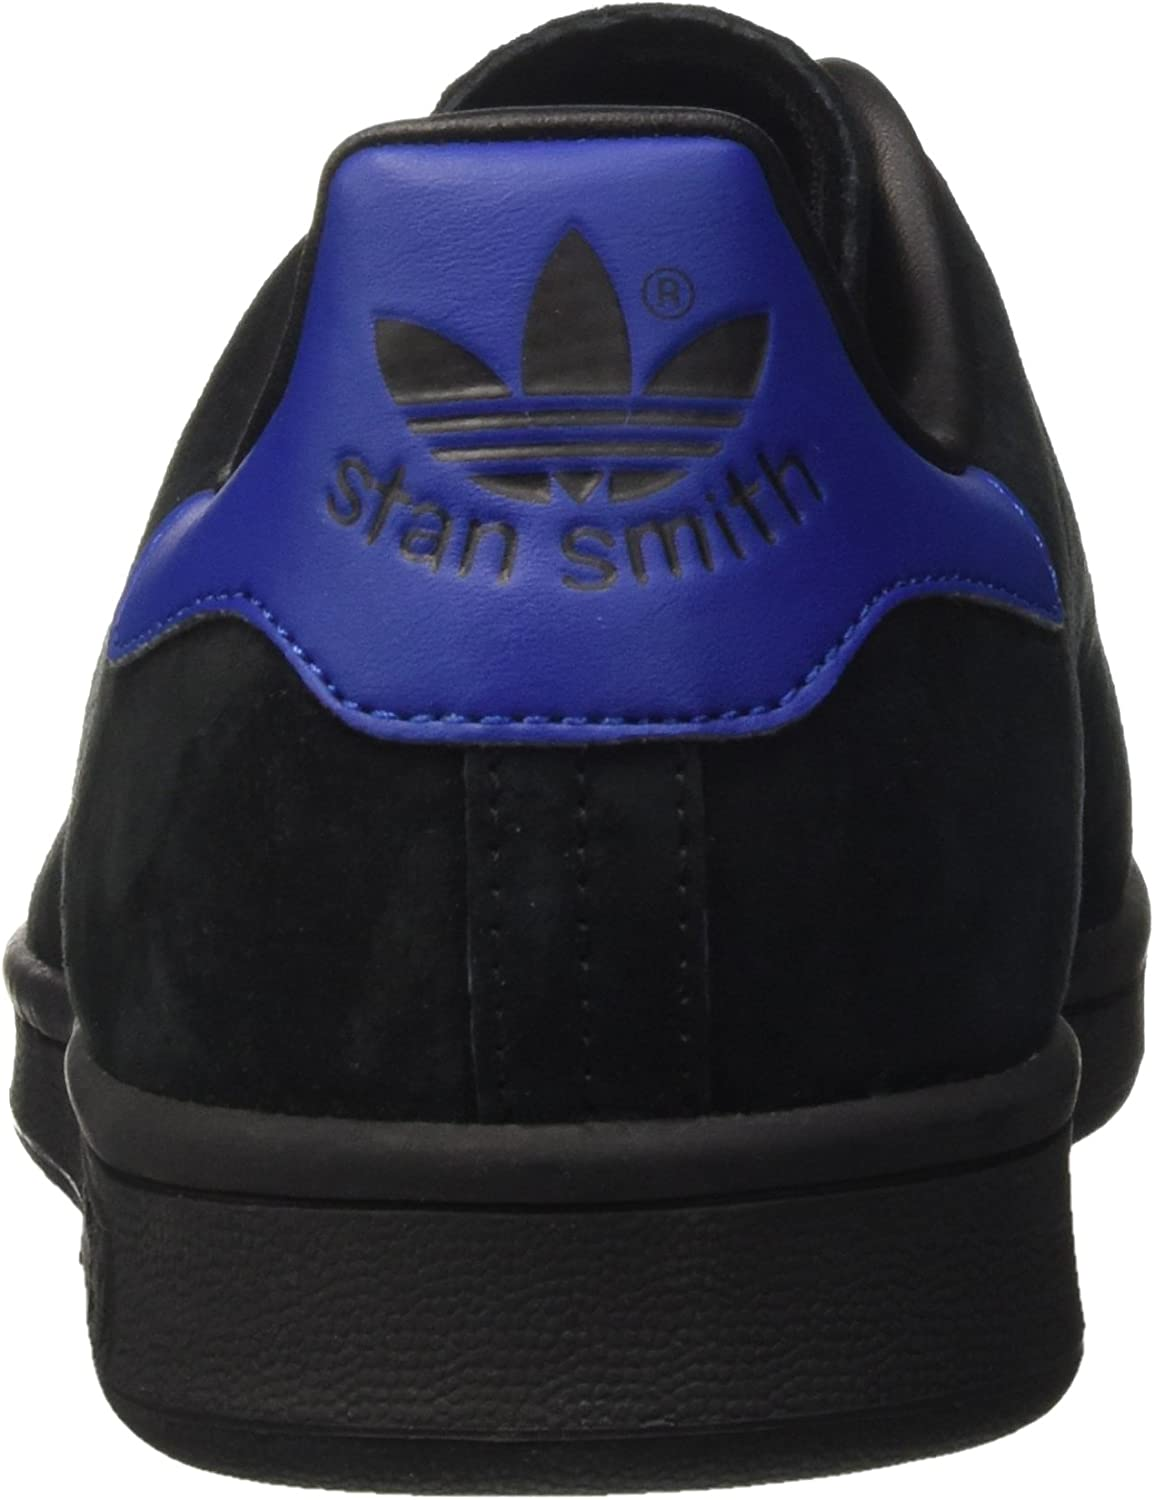 Baskets Mode Mixte Adulte adidas Originals Stan Smith